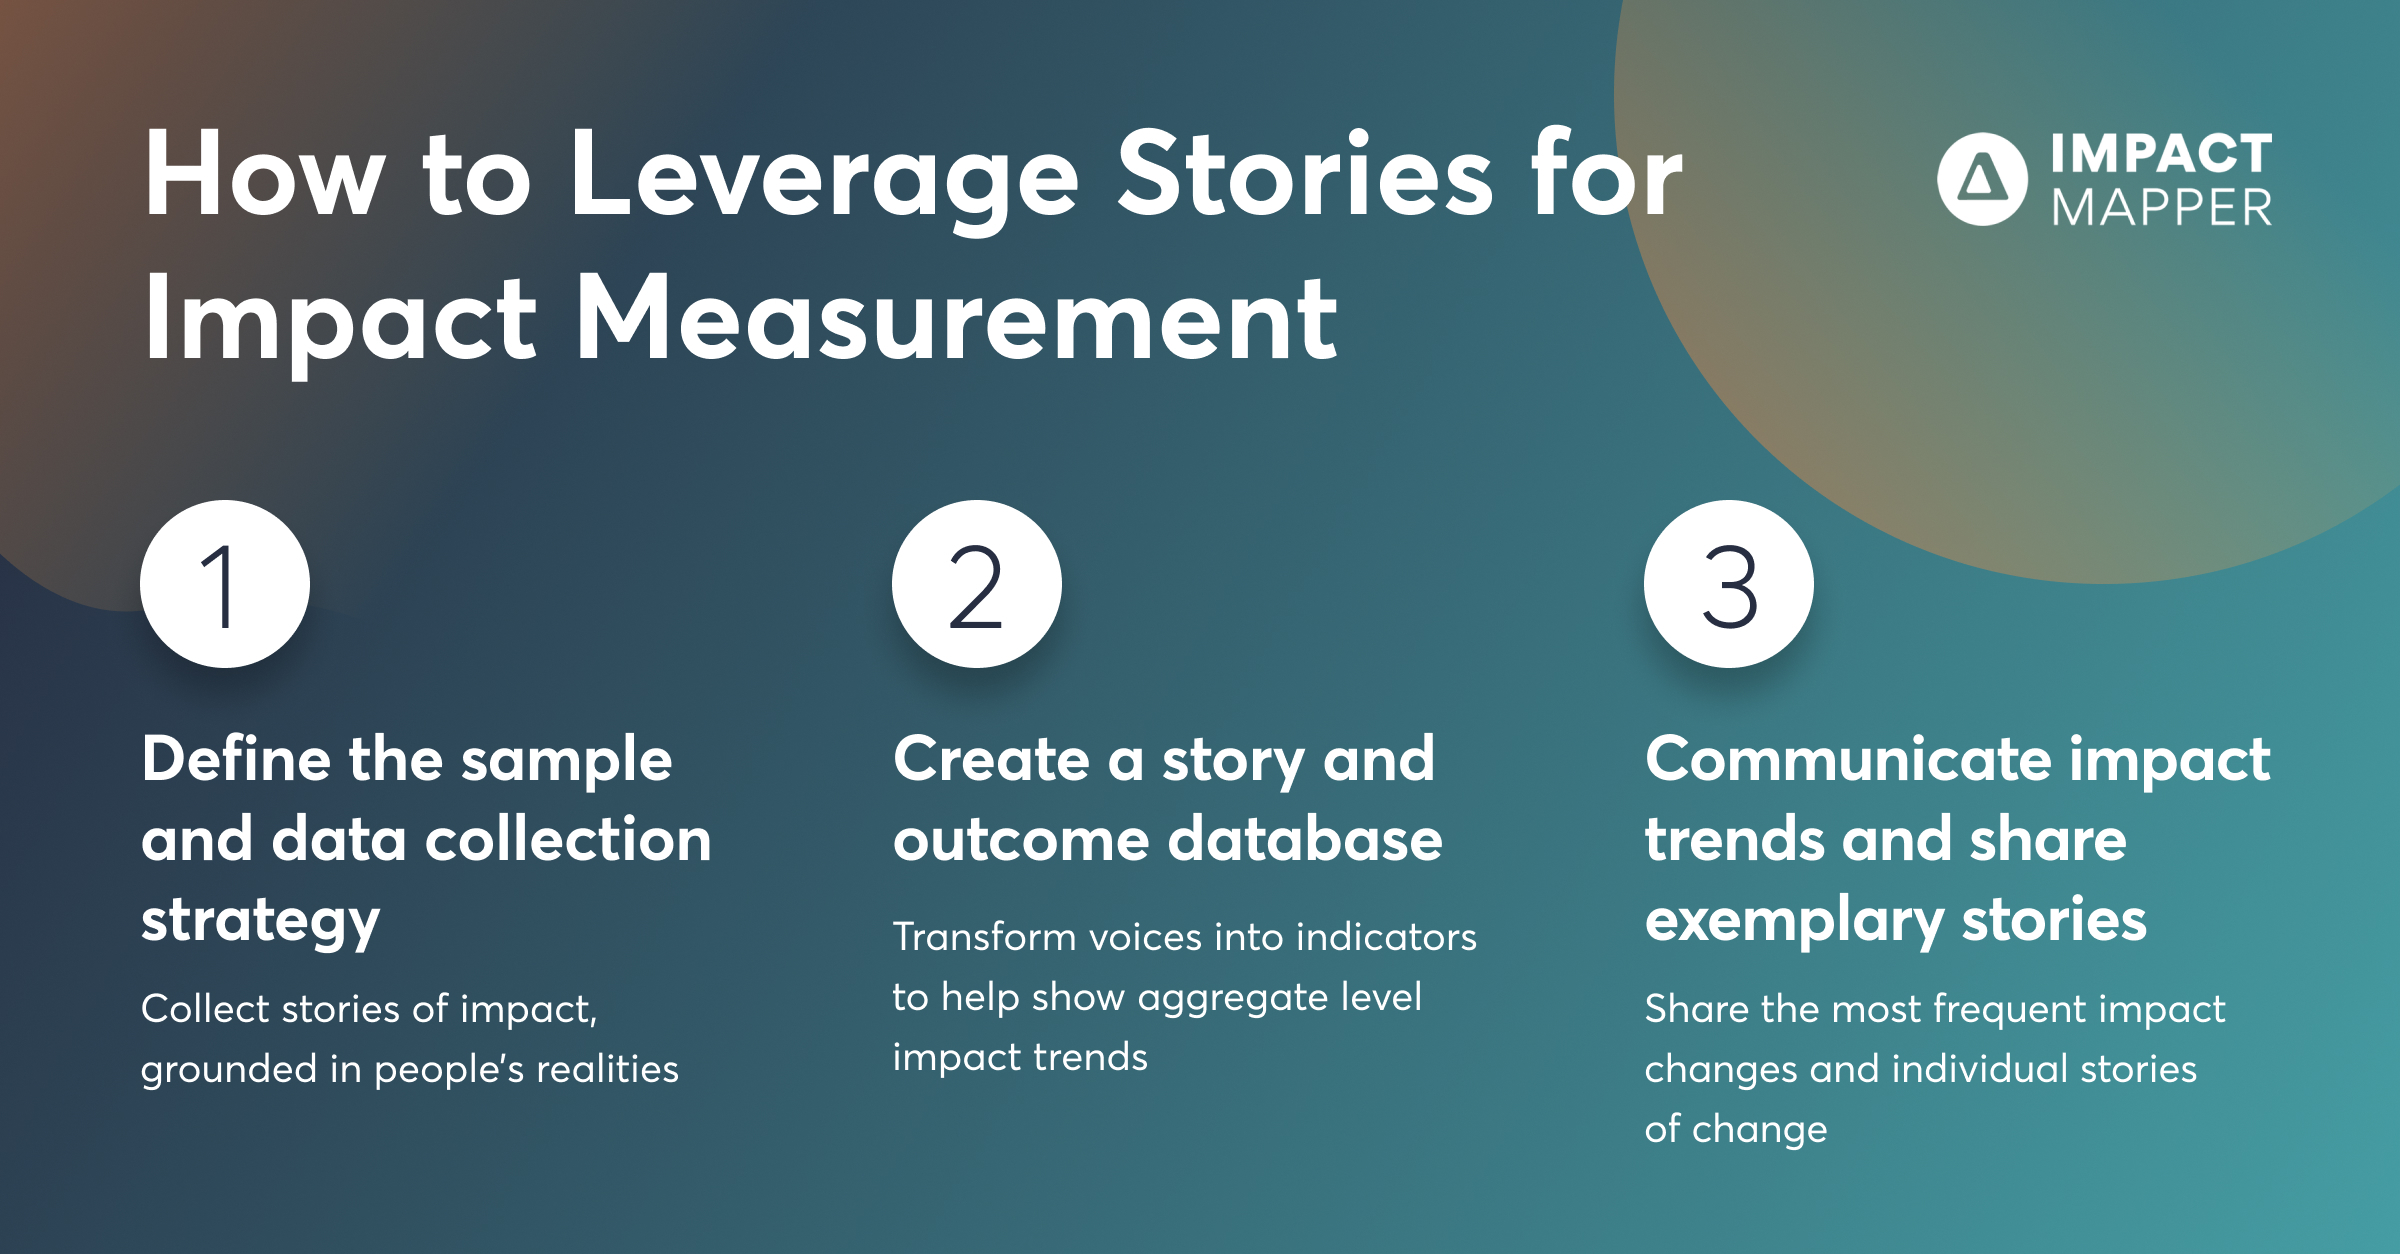 3 Practical tips to leverage stories for impact measurement